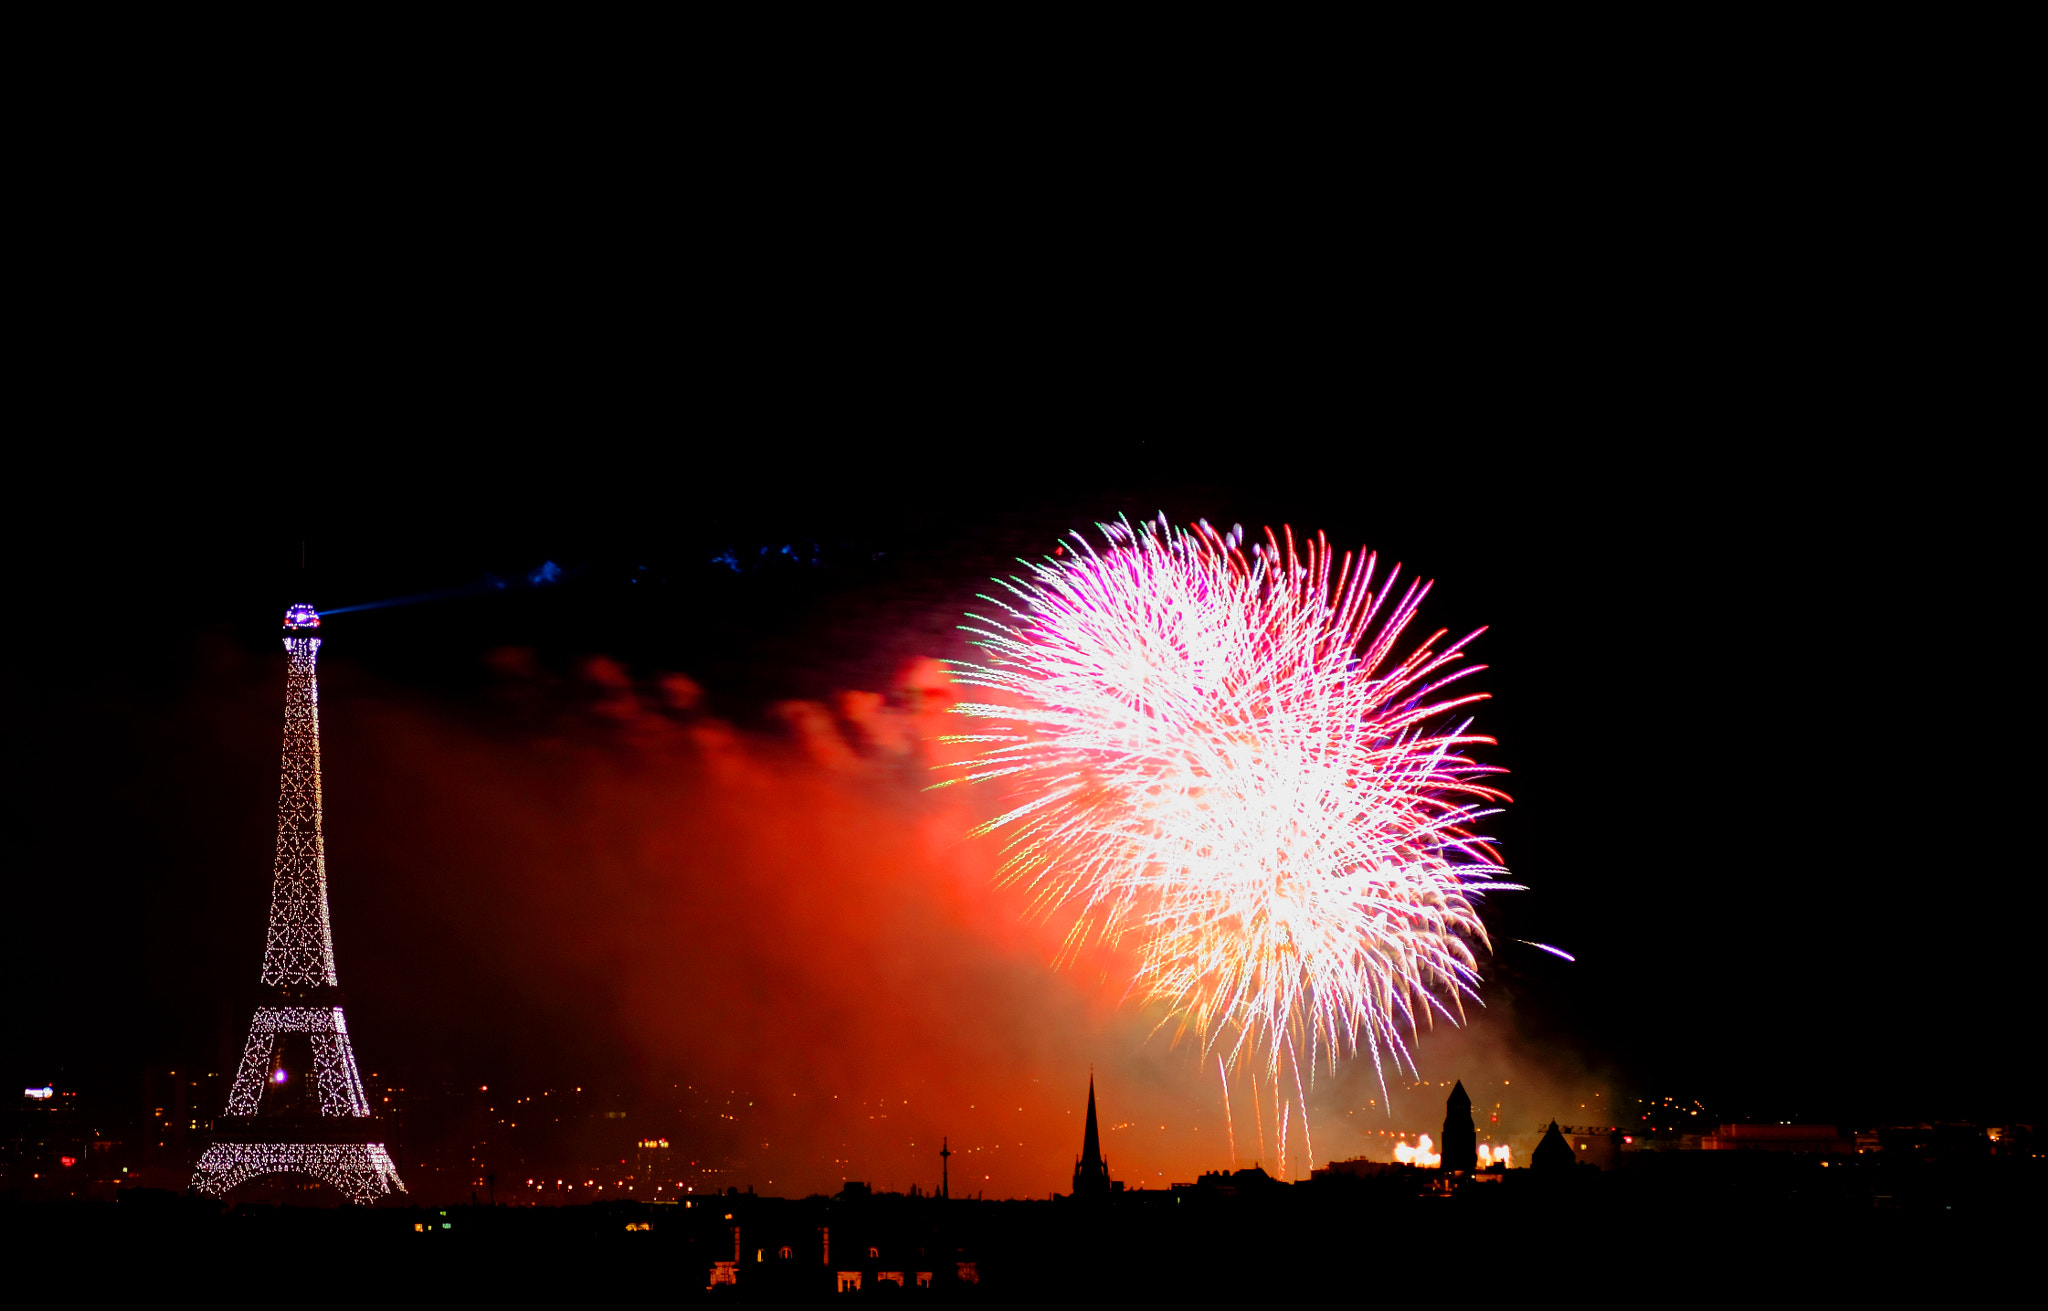 Photograph 14/07 Firework in Paris by Alexandre BLANCHARD on 500px